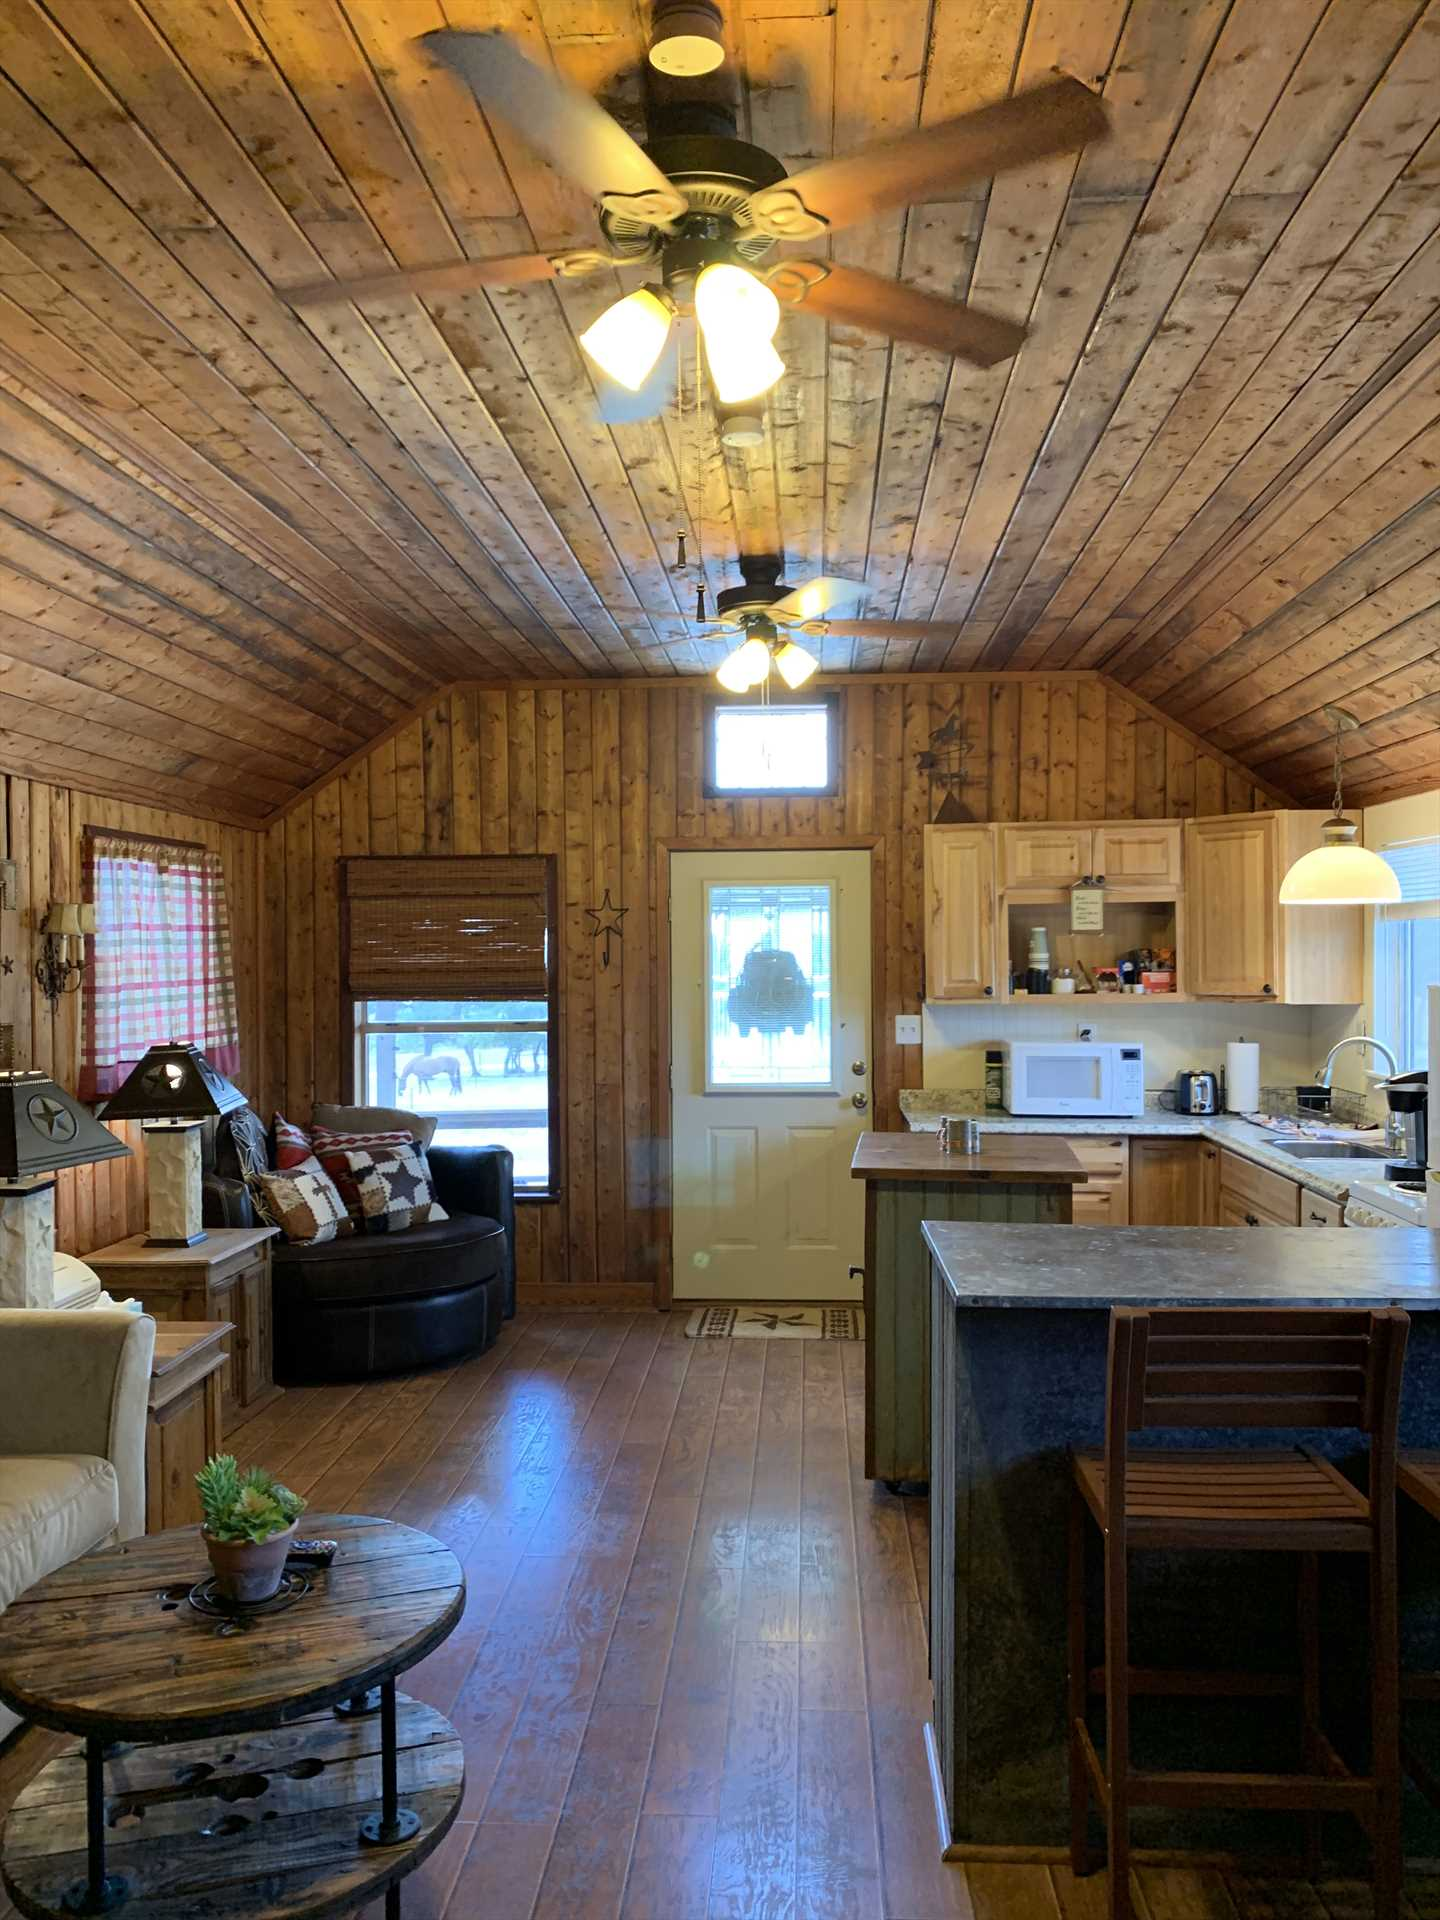 Cable and satellite TV, a DVD player, and shared Wifi on the ranch highlight your tech amenities here.